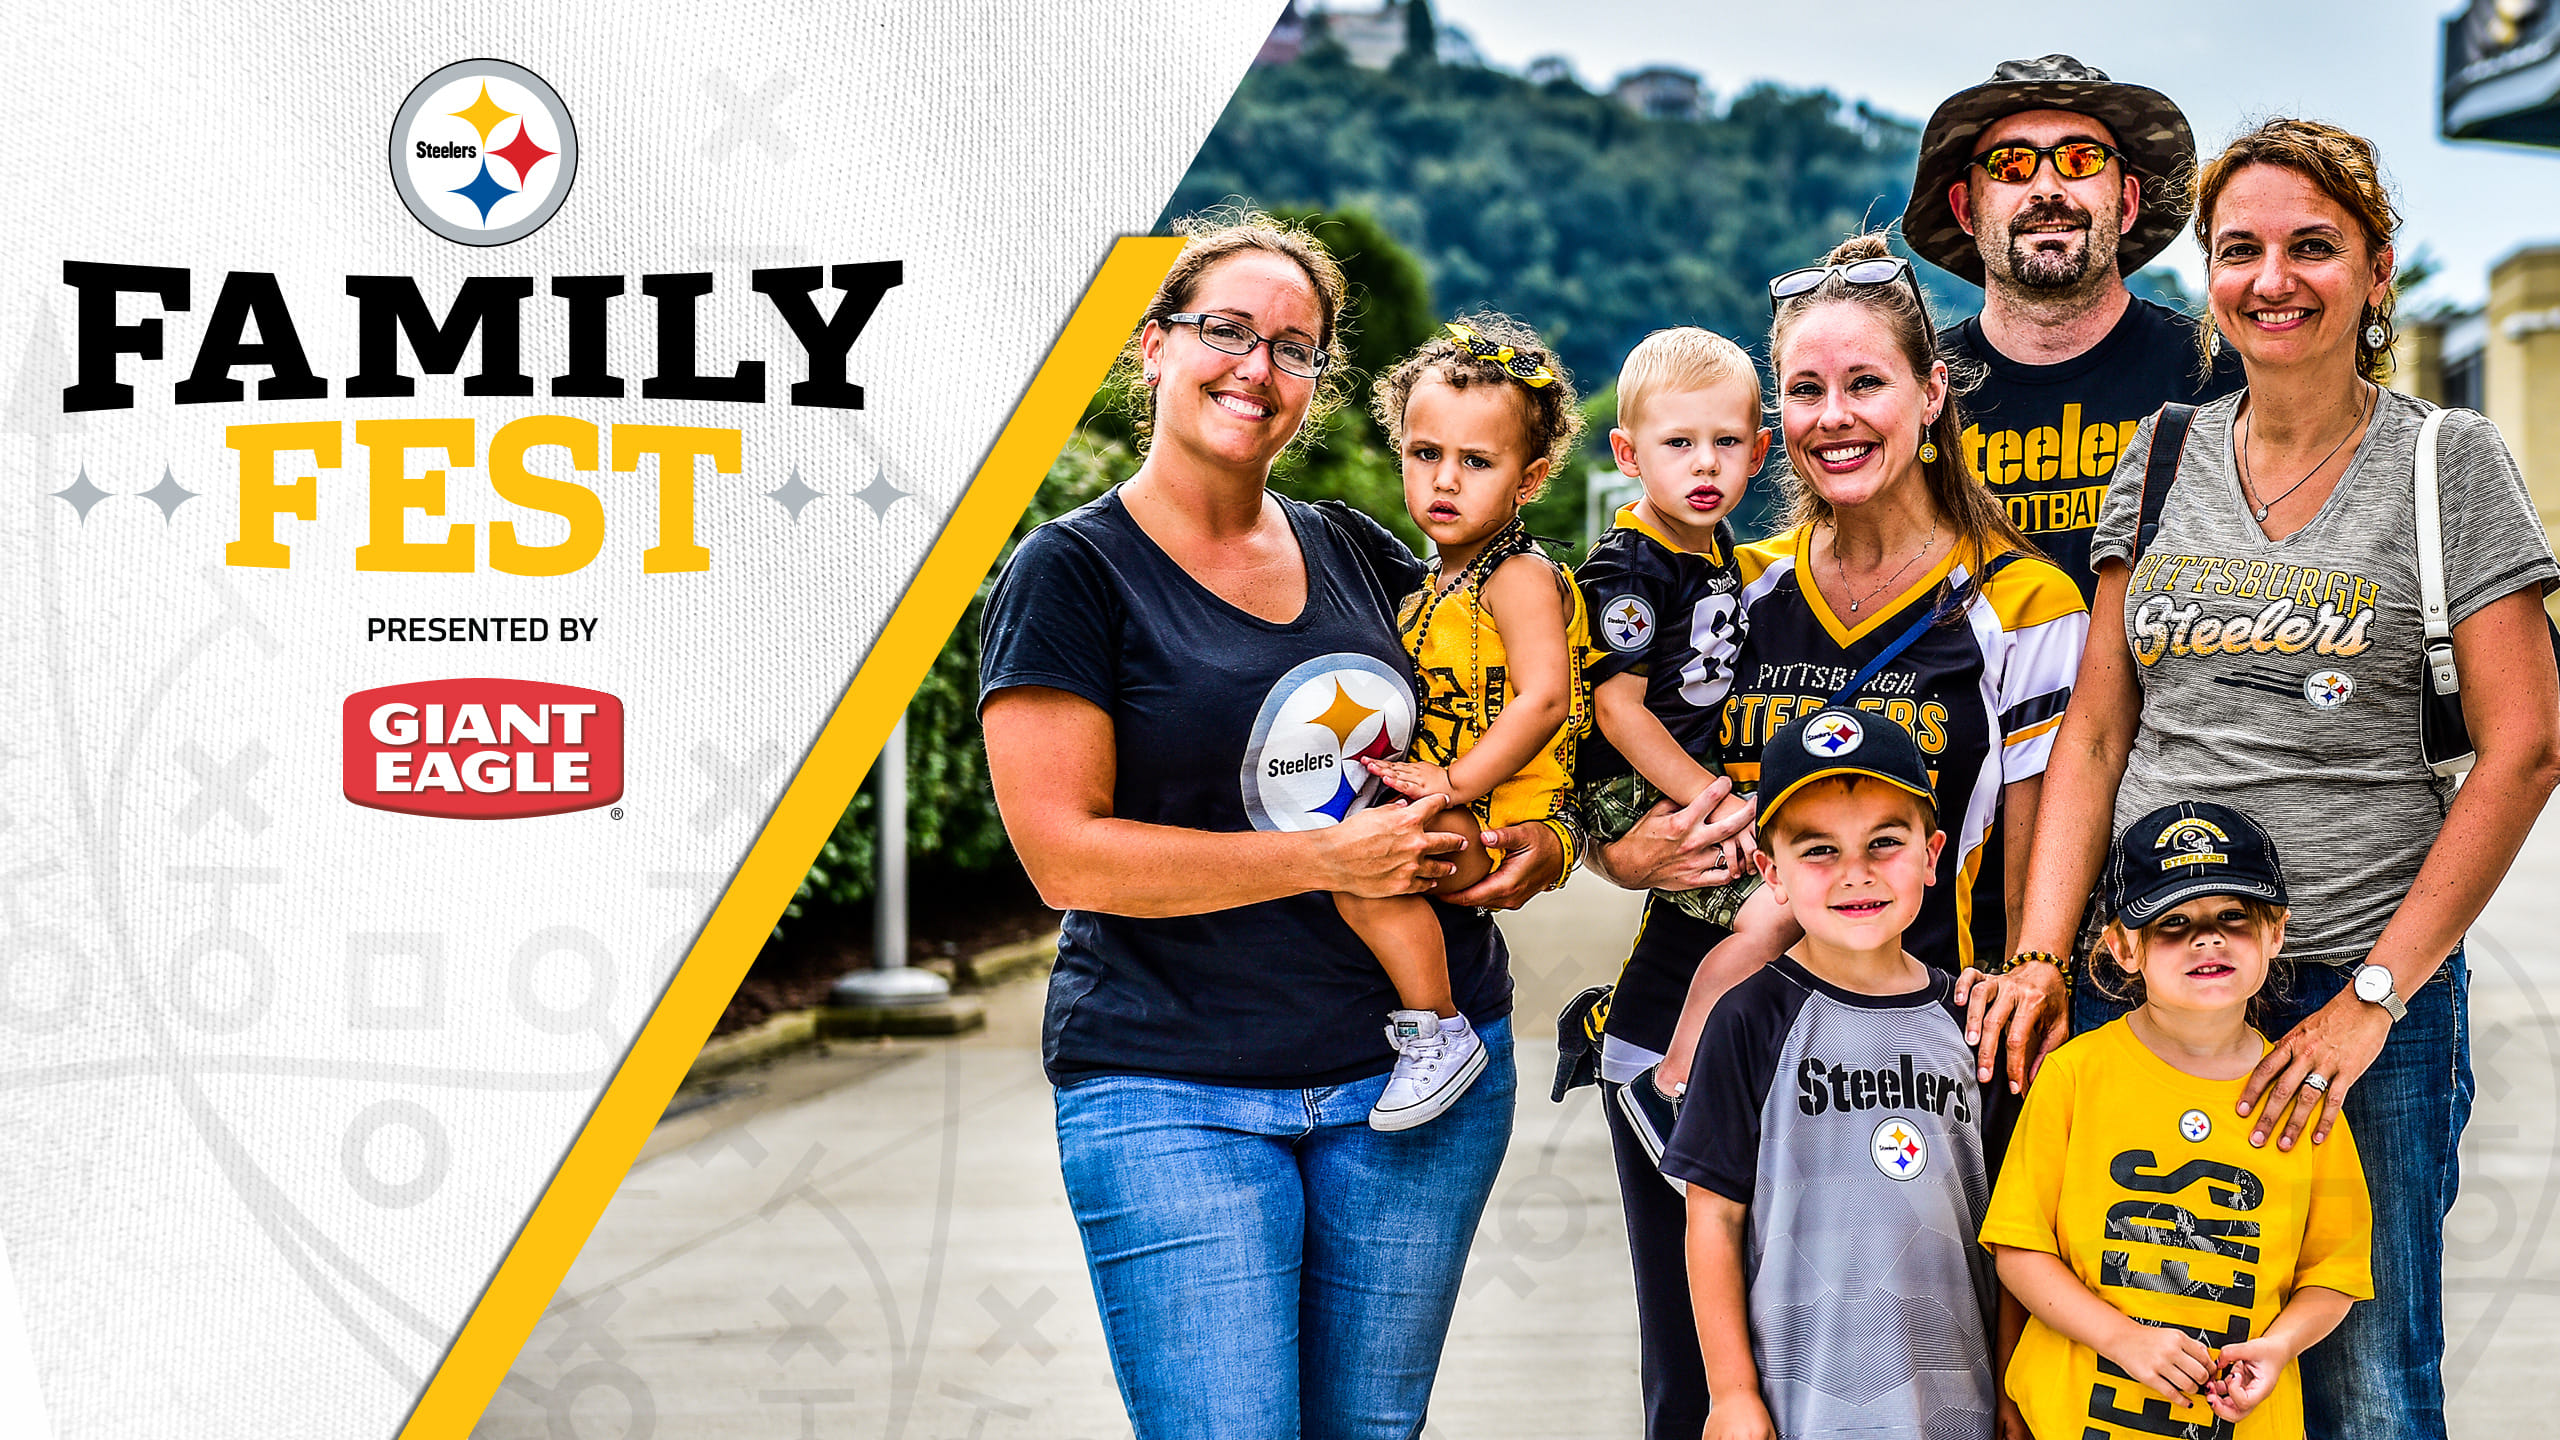 Steelers Family Fest, presented by Giant Eagle